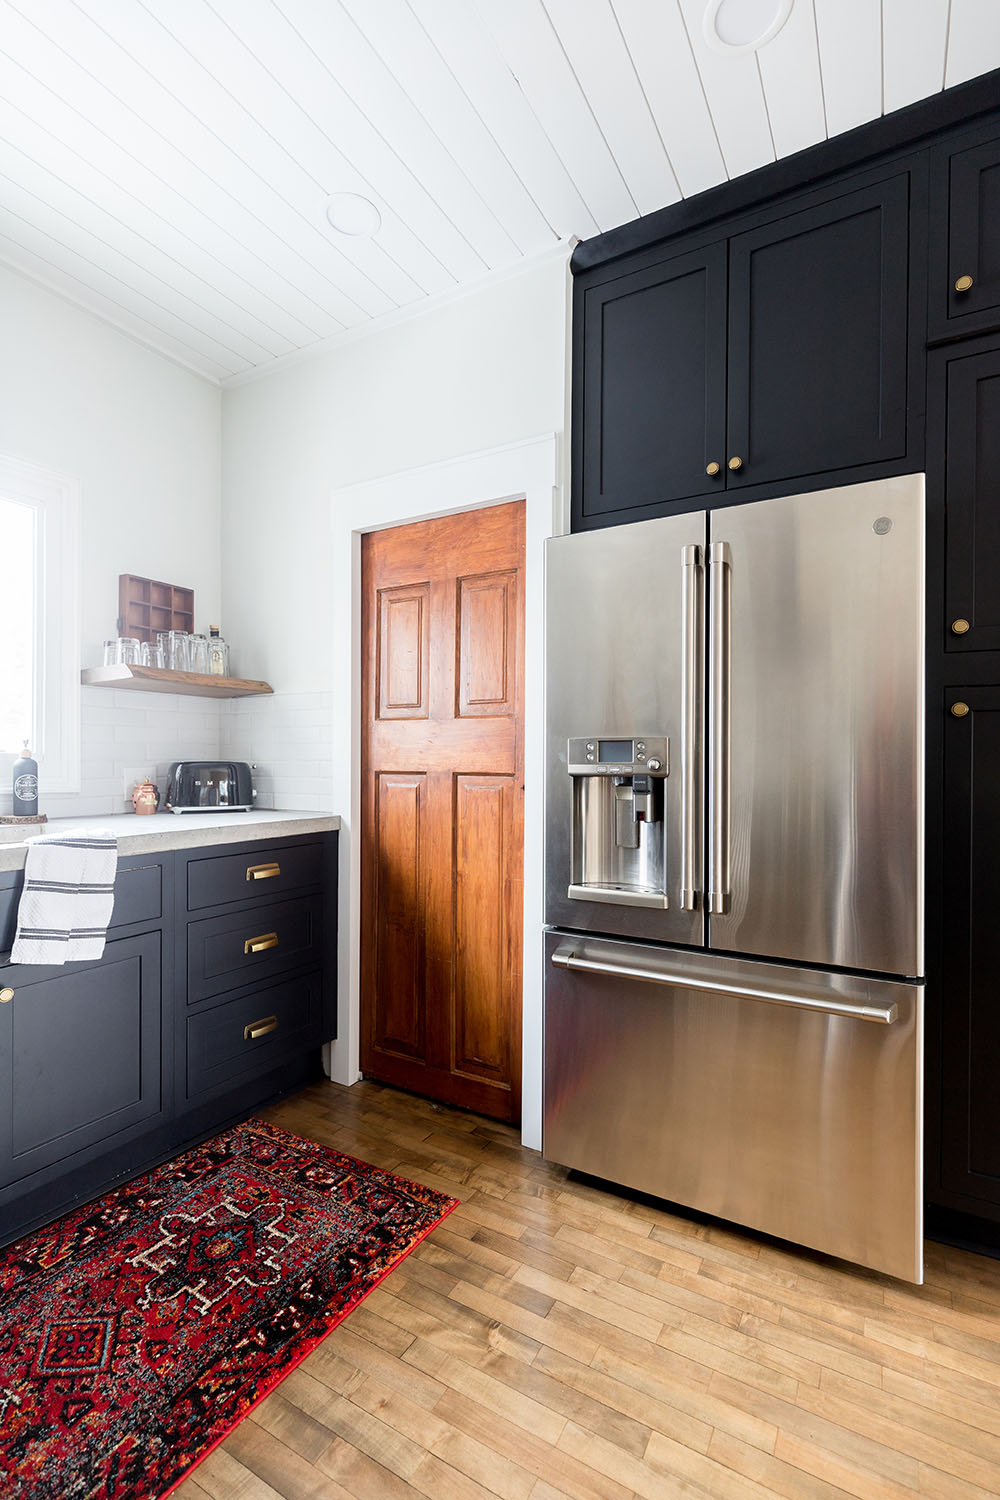 The corner of a kitchen with dark cabinets and a GE Cafe refrigerator.